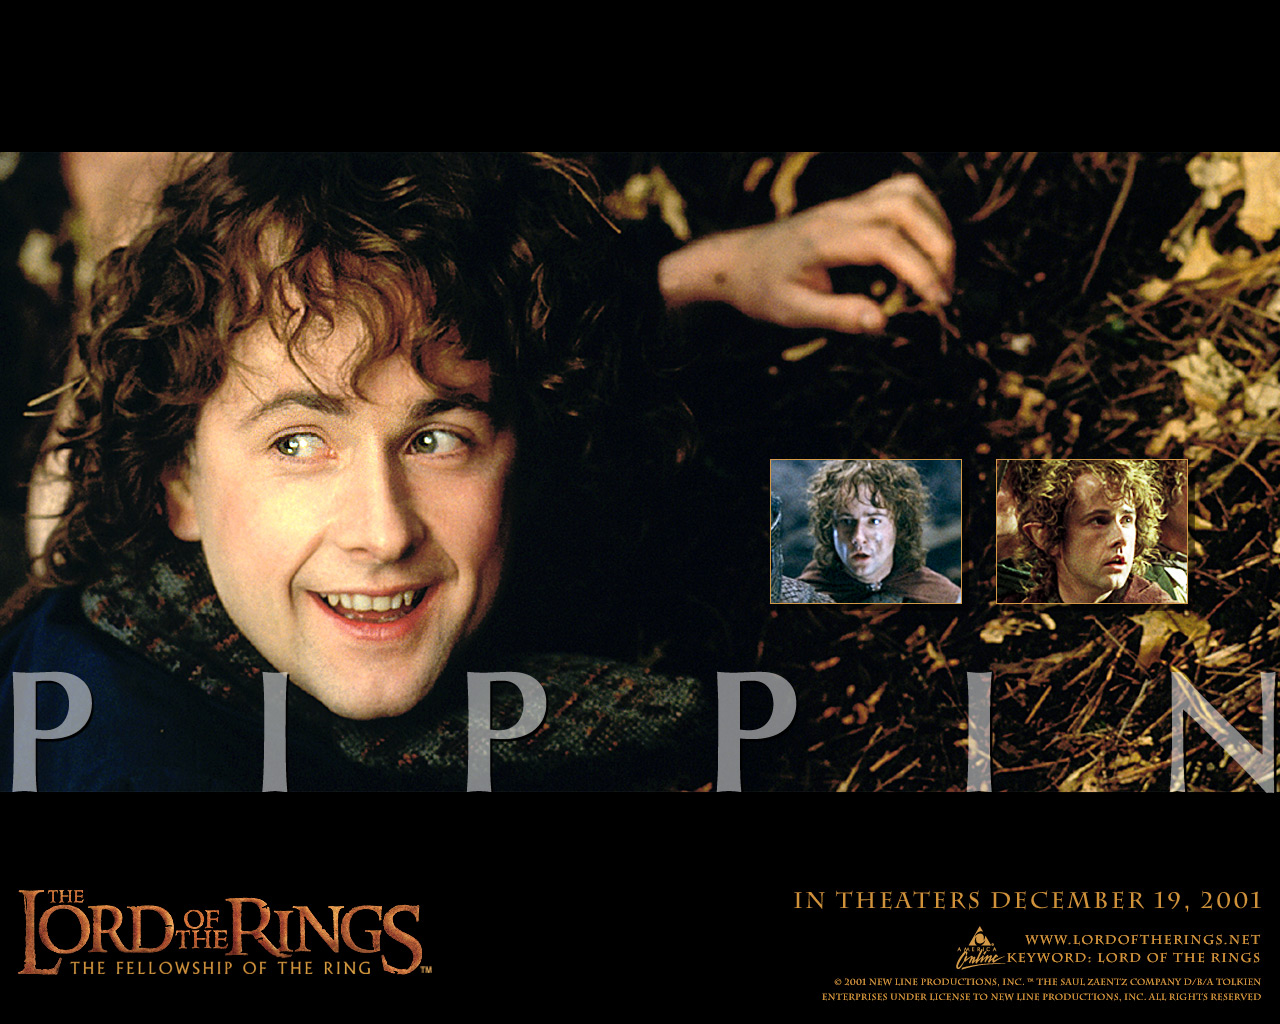 The Lord of the Rings   Lord of the Rings Wallpaper 122651 1280x1024